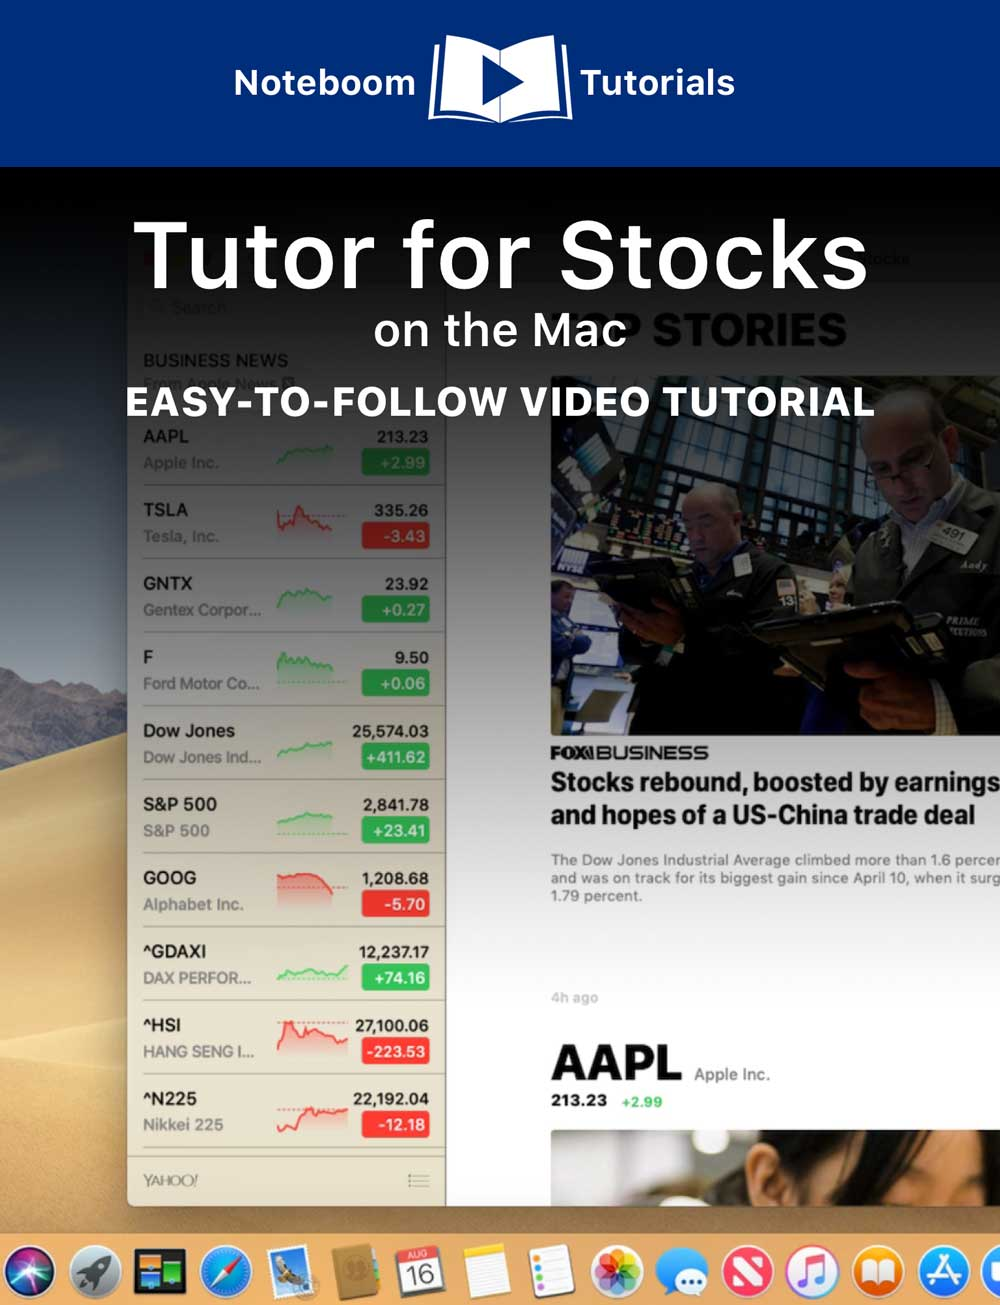 Tutor for Stocks for the Mac